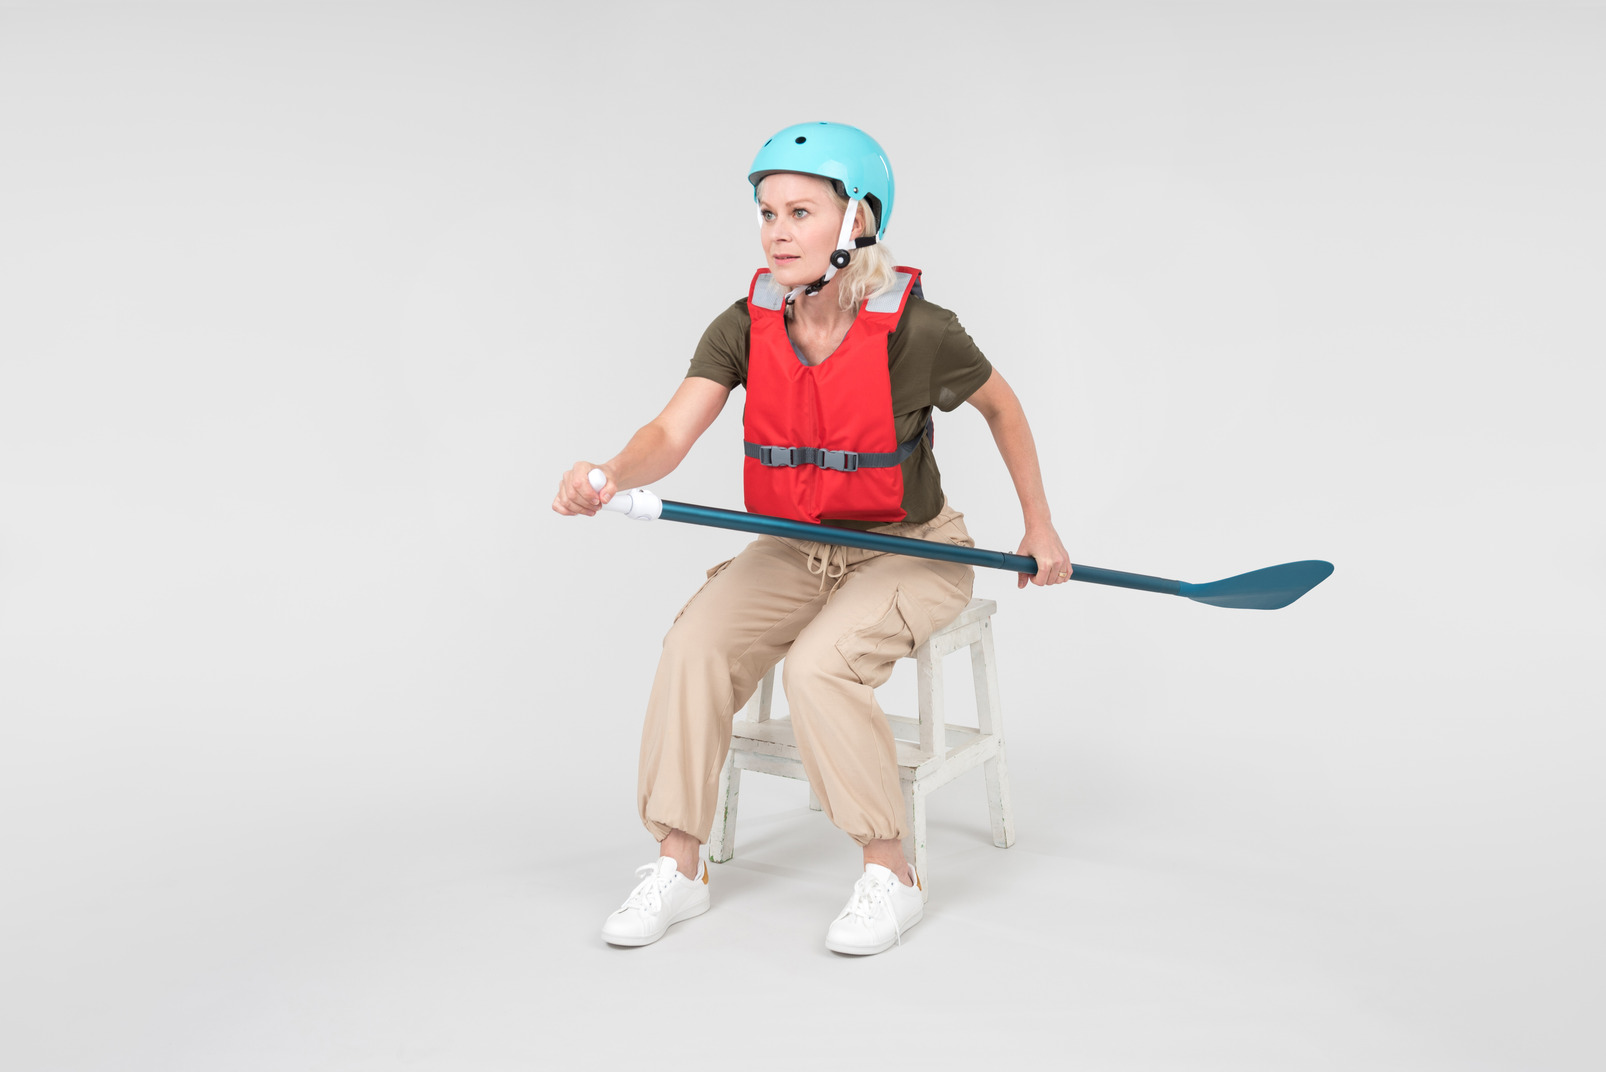 Mature woman in life vest and blue helmet holding paddle